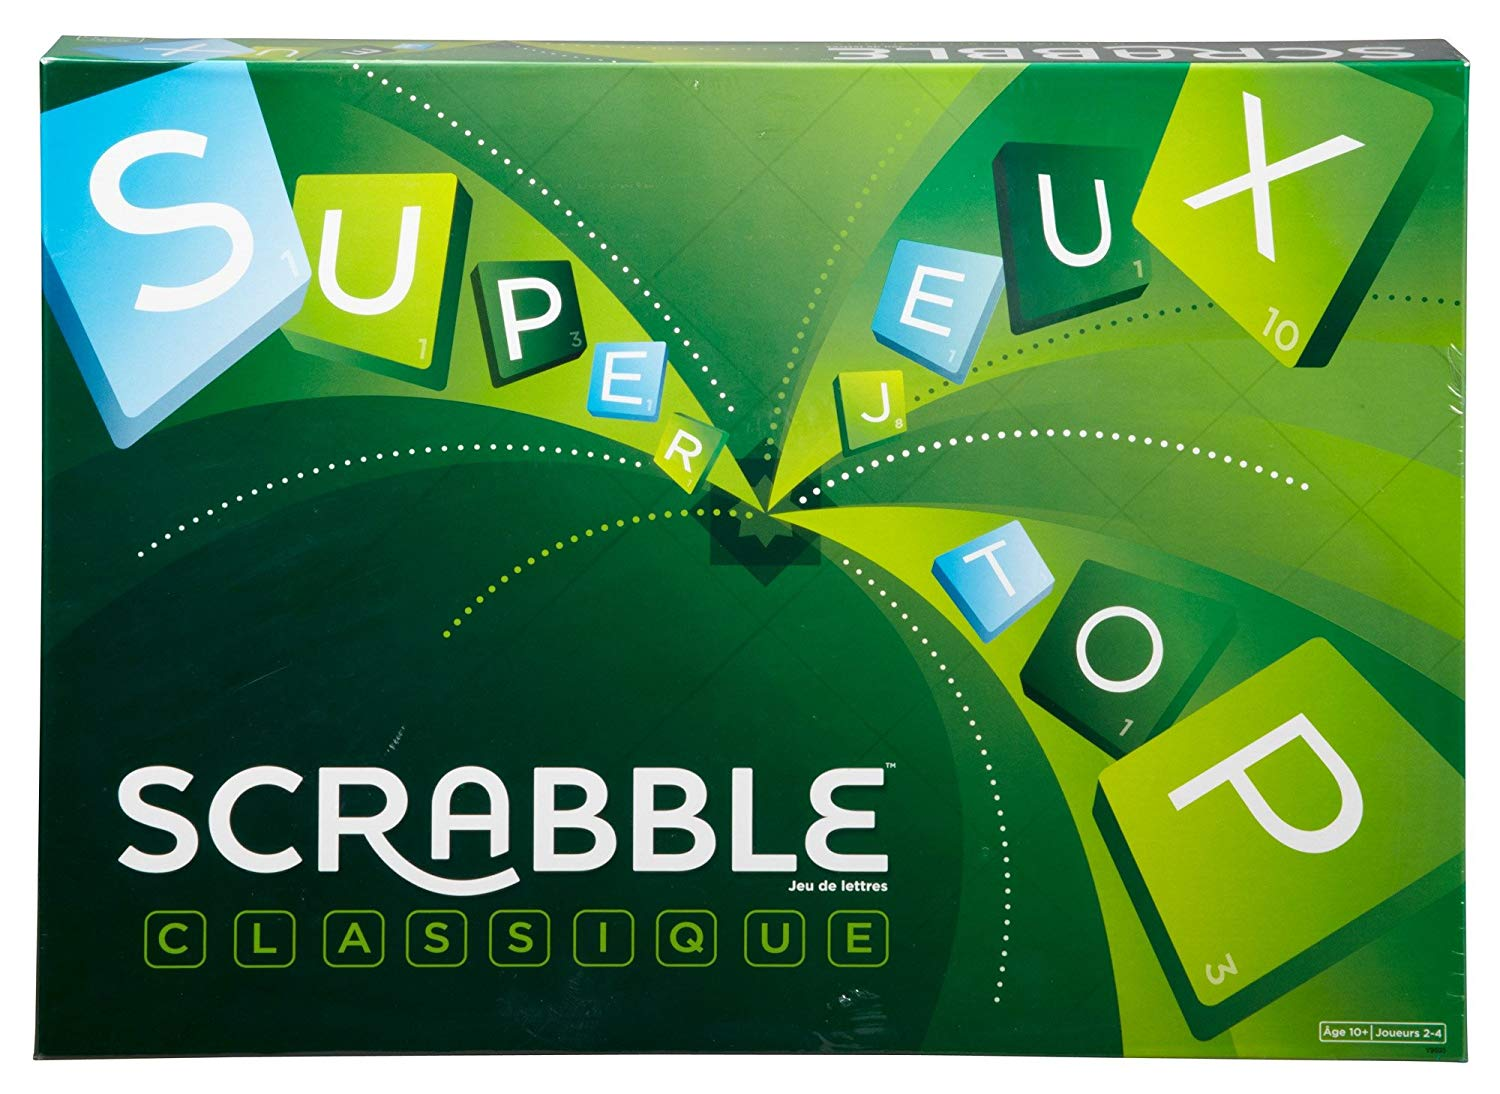 SCRABBLE – Thinking Game